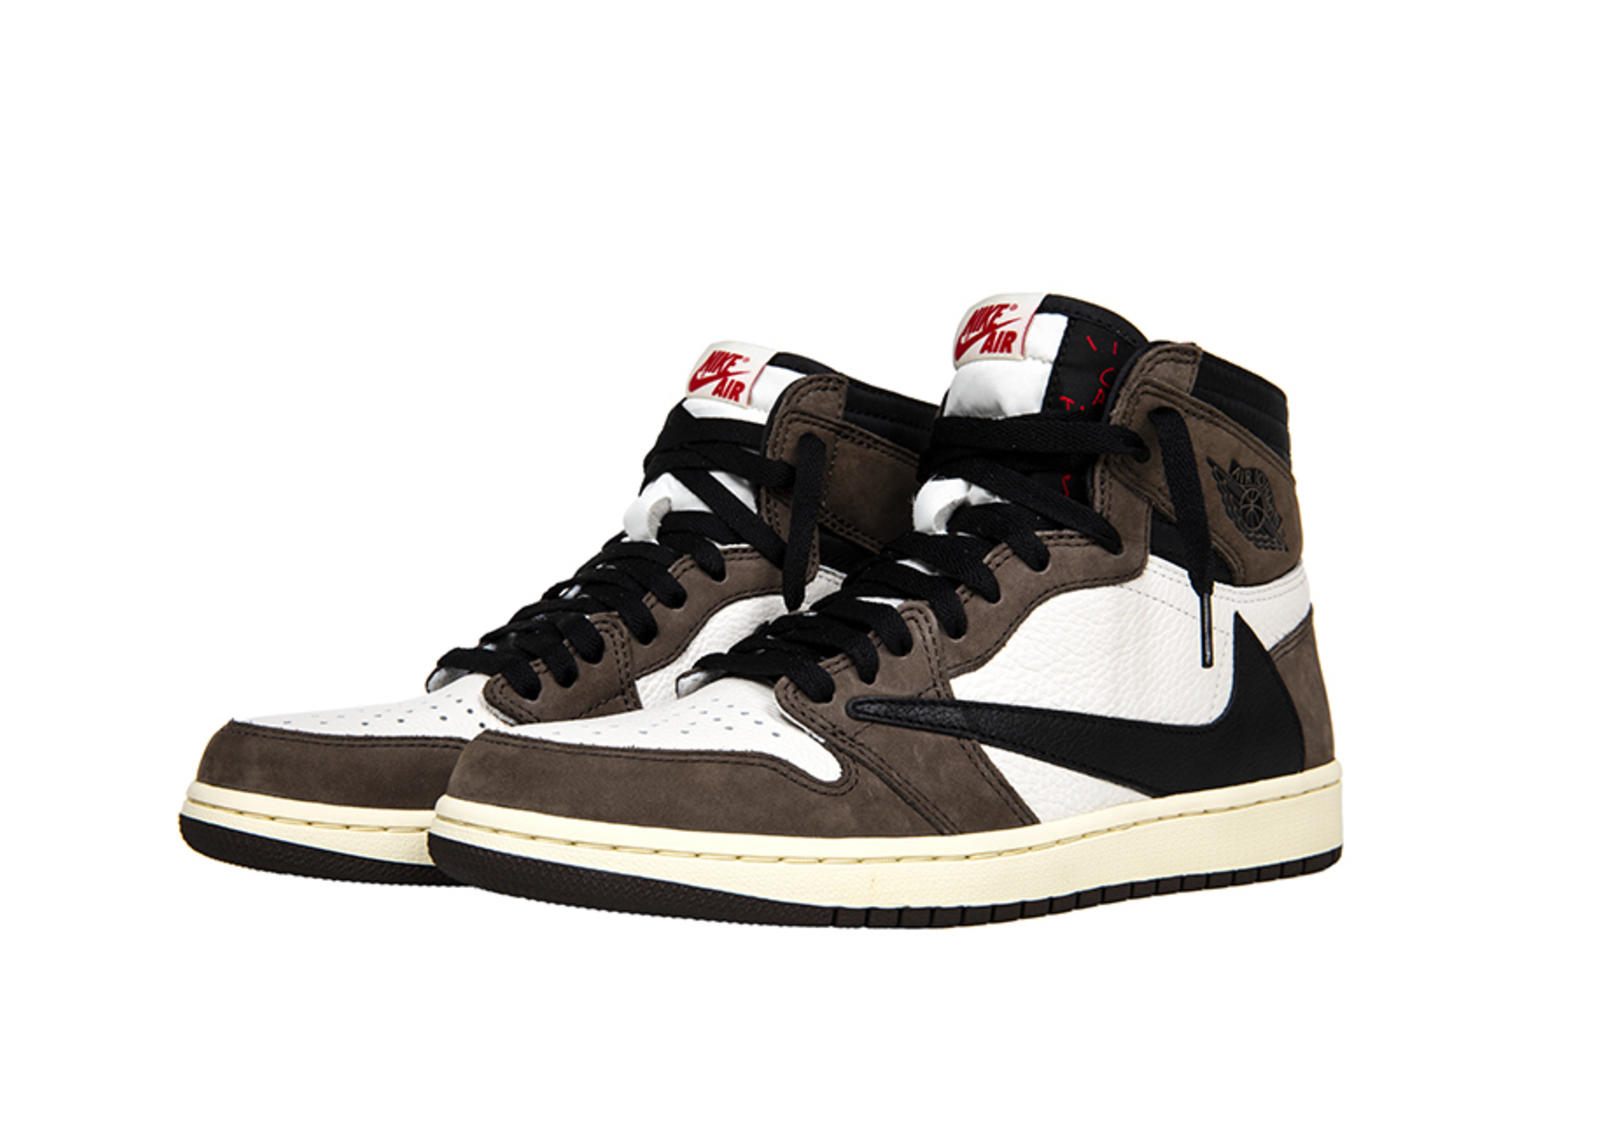 d15616f41c3 Travis Scott Air Jordan I High OG and Apparel Collection Official Images  and Release Date 23